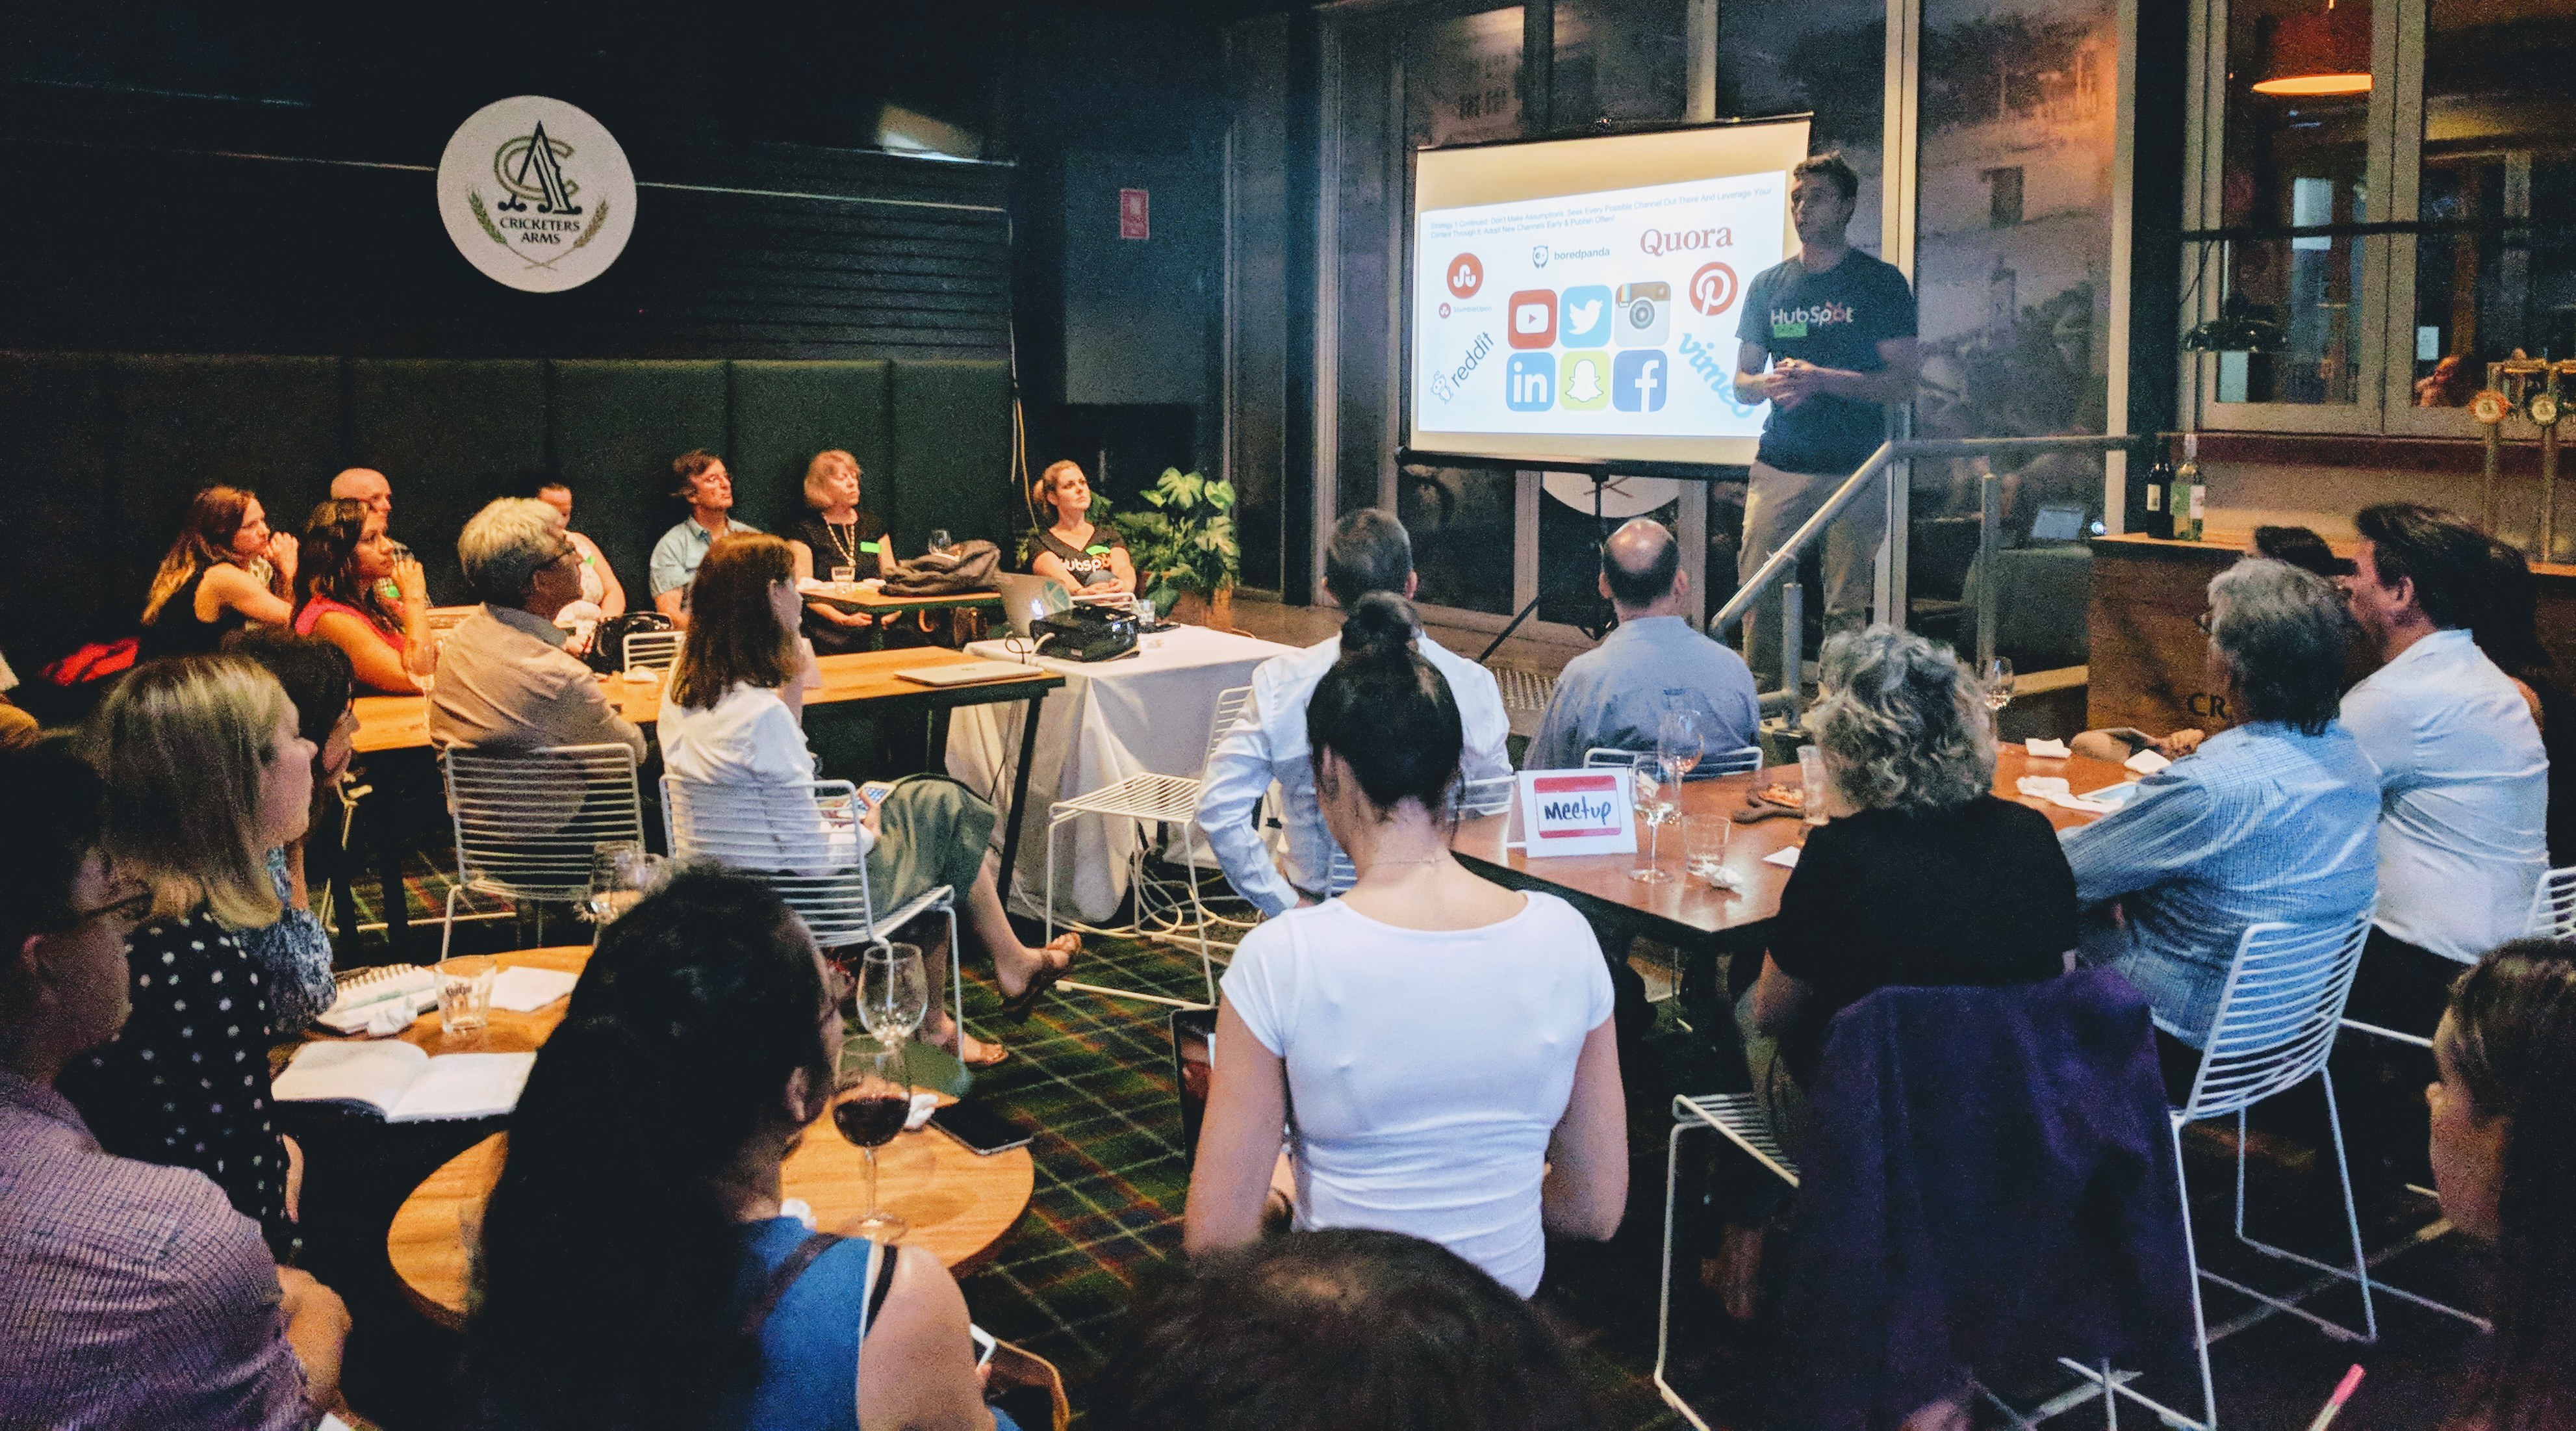 inbound-brisbane-meetup-photo6.jpg